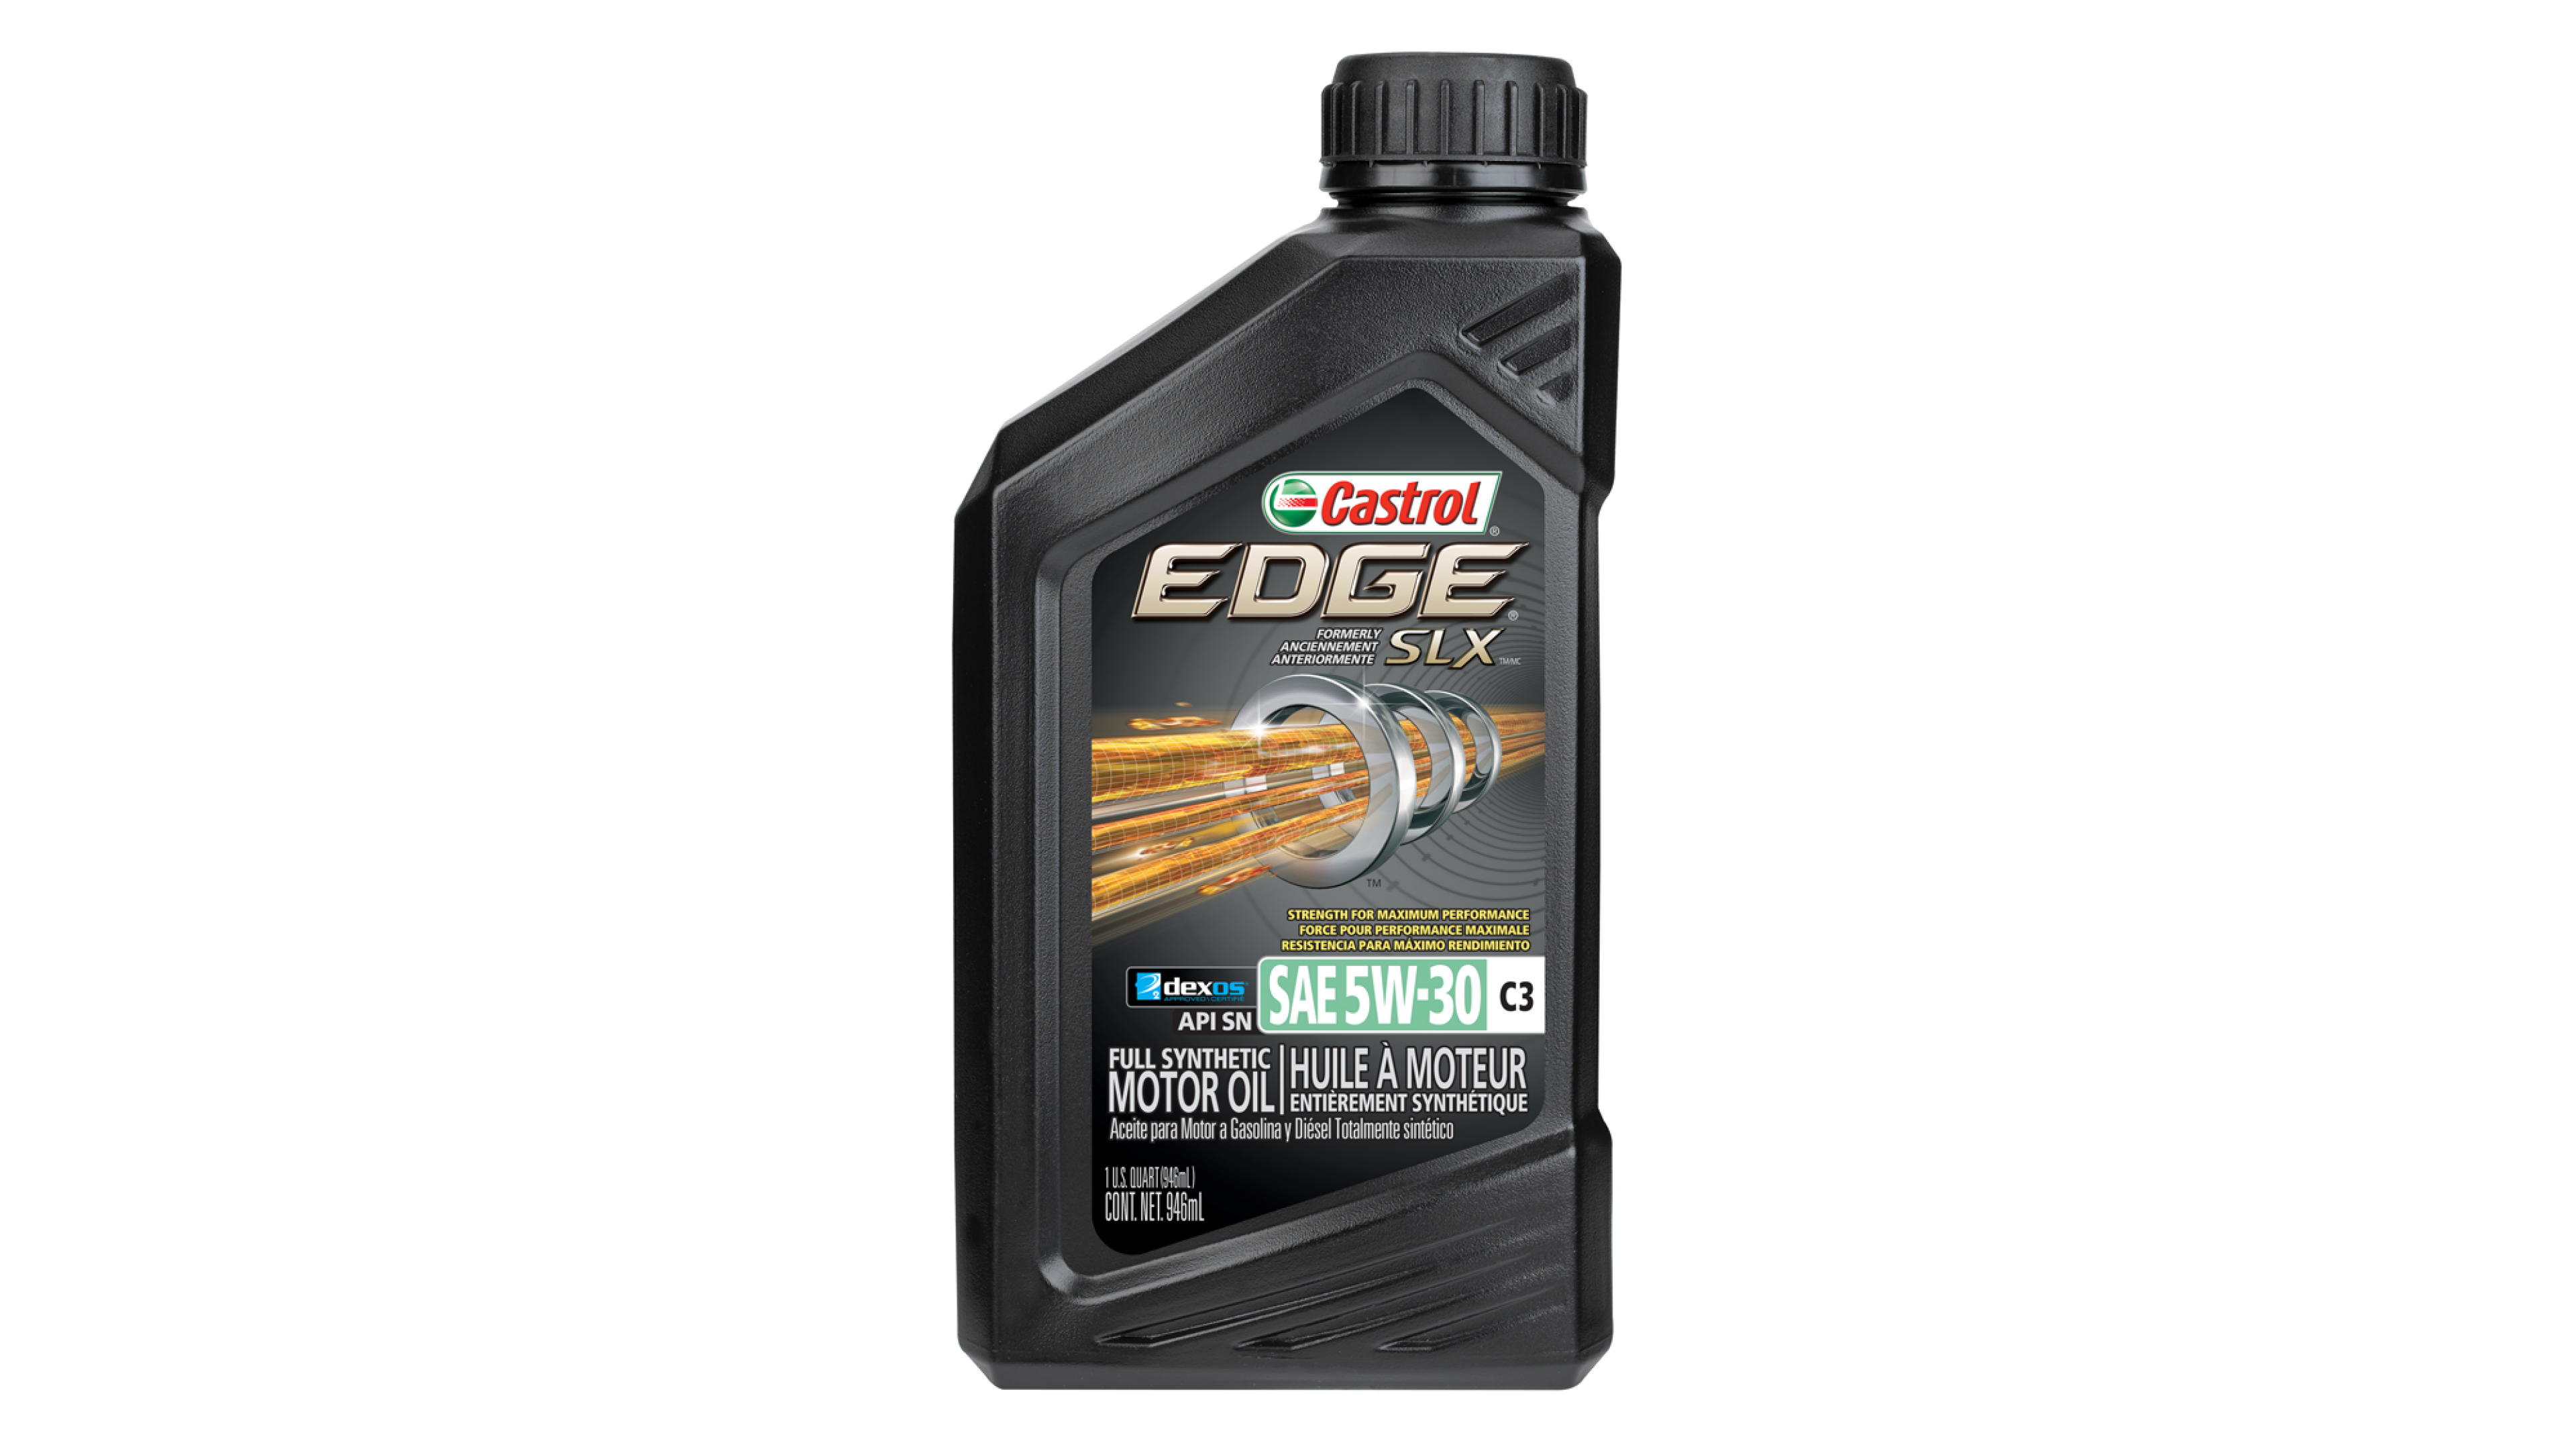 5w20 Vs 5w30 >> What Is The Difference Between 5w30 And 5w20 Motor Oil ...